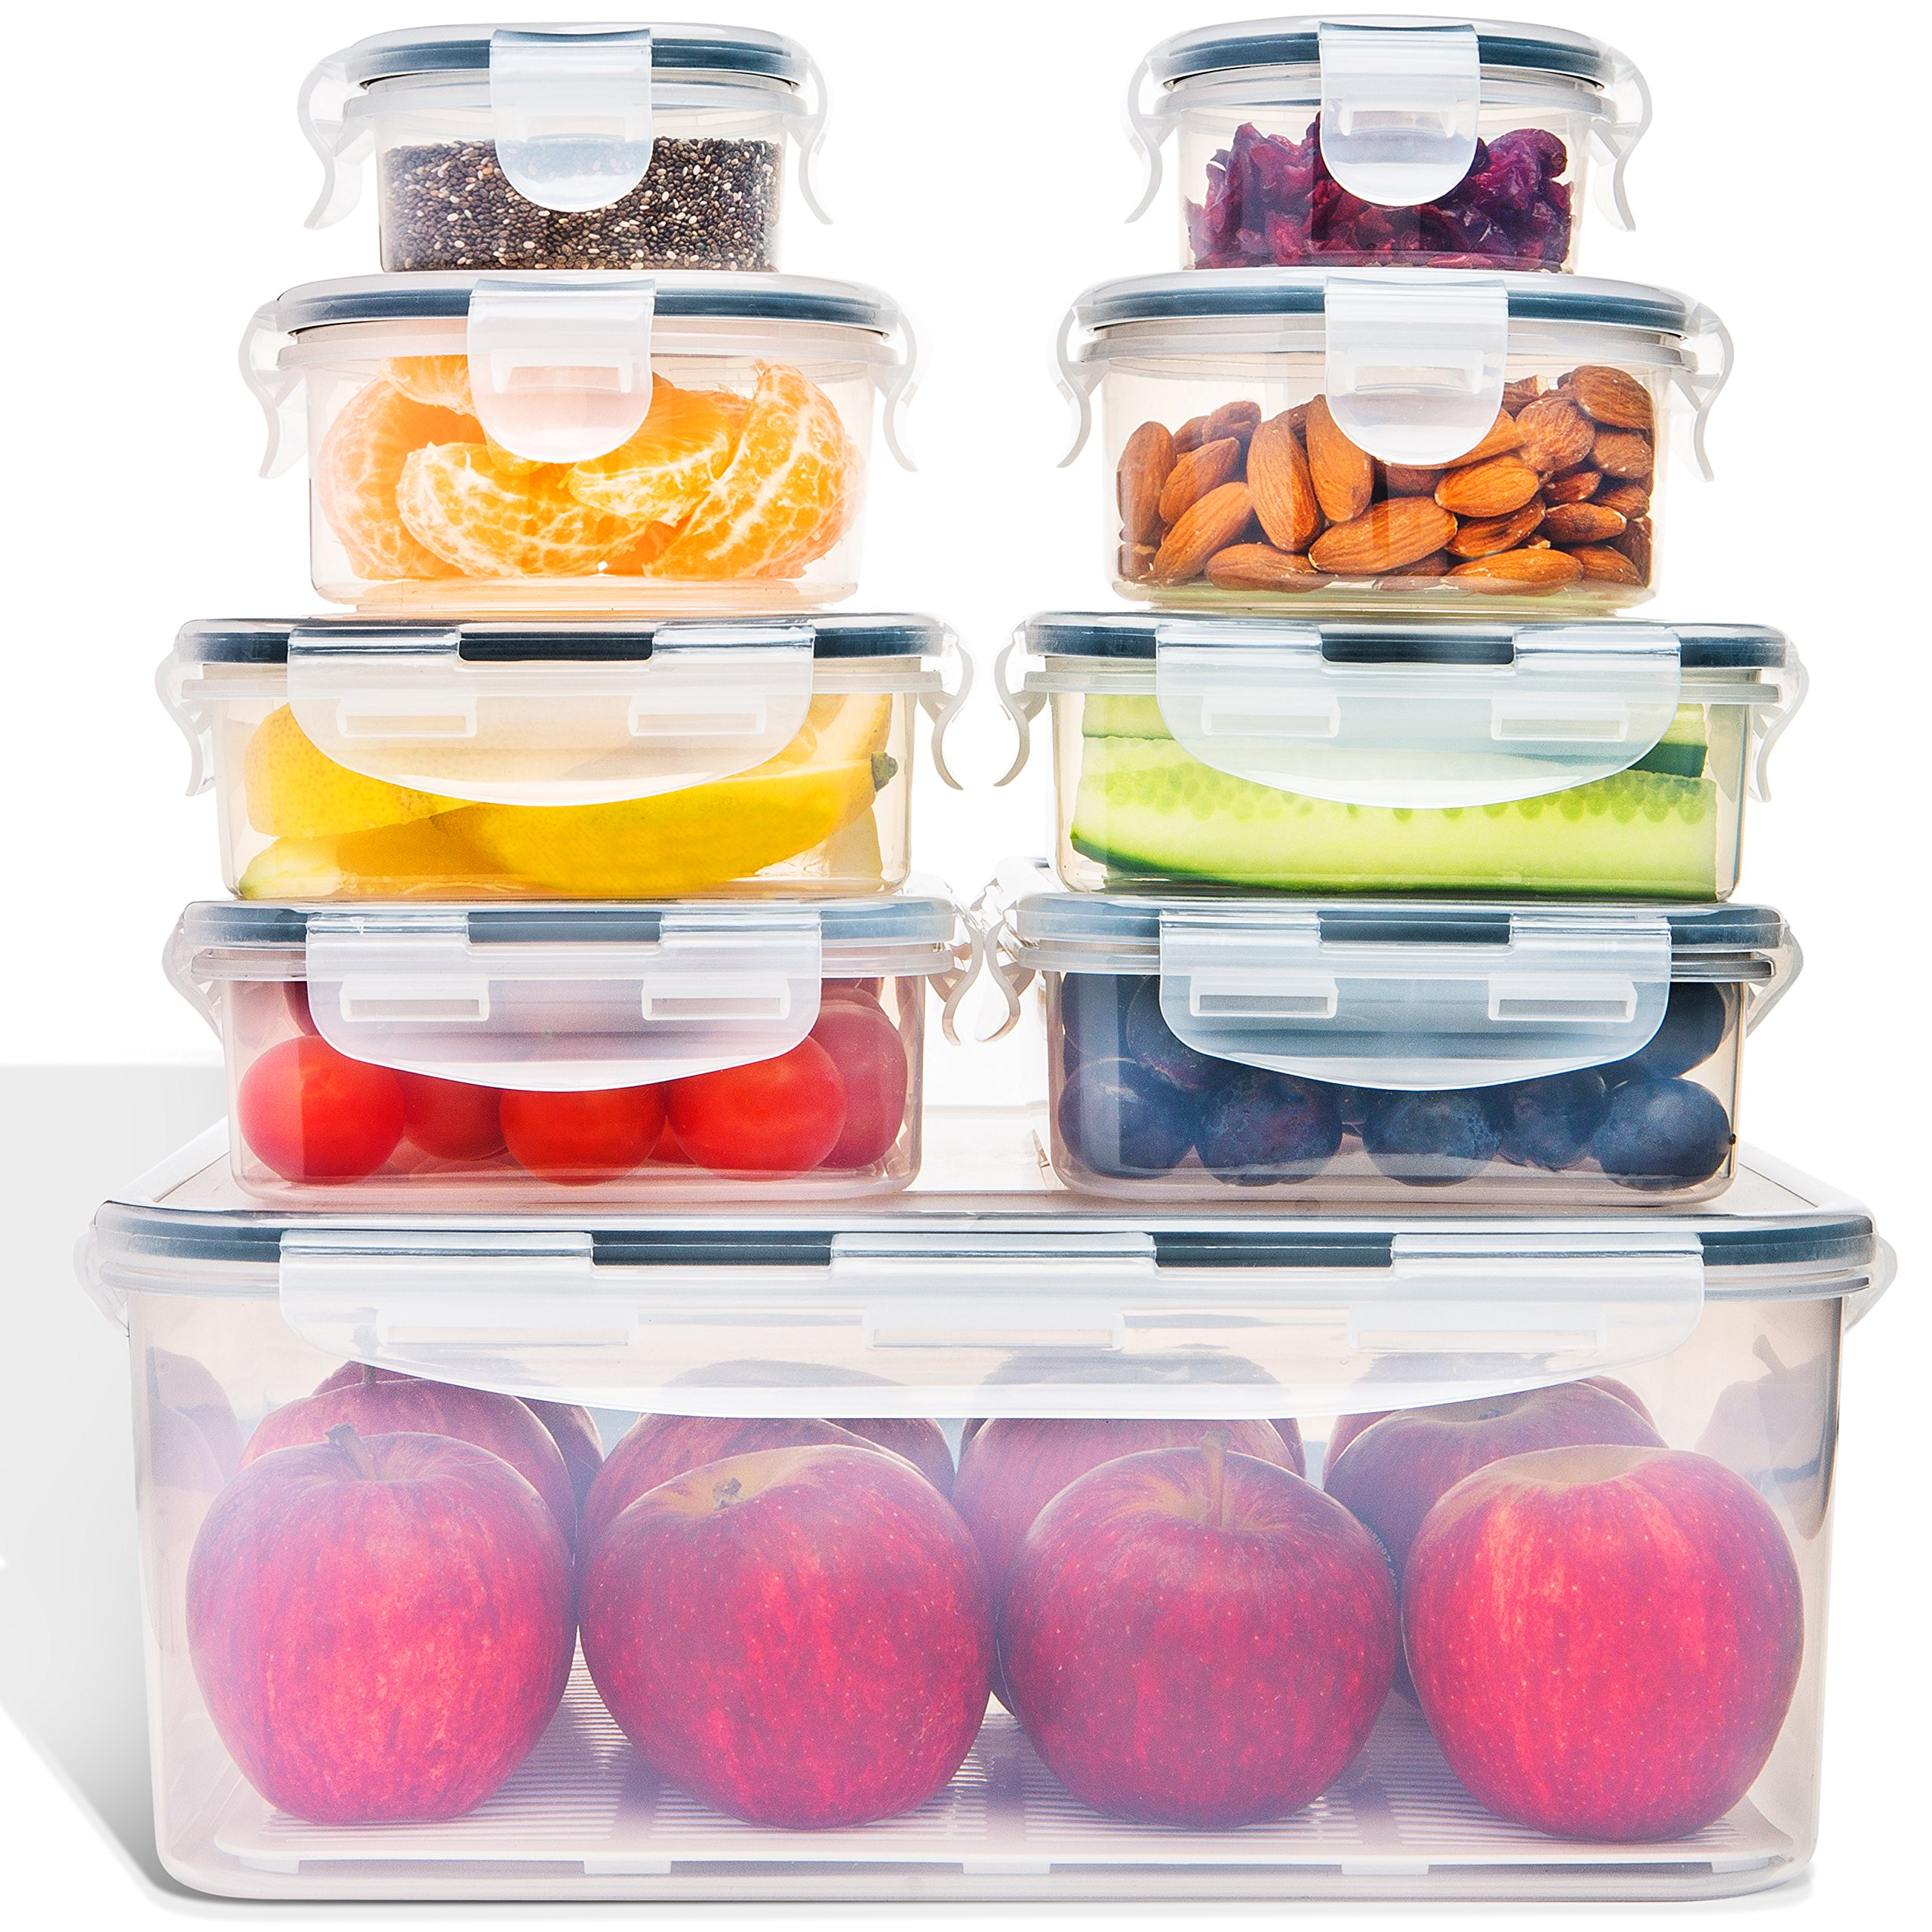 Food Storage Containers with Lids - Airtight Leak Proof Easy Snap Lock and BPA Free Clear Plastic Container Set for Kitchen Use by Fullstar (18 Piece Set) by Fullstar (Image #2)